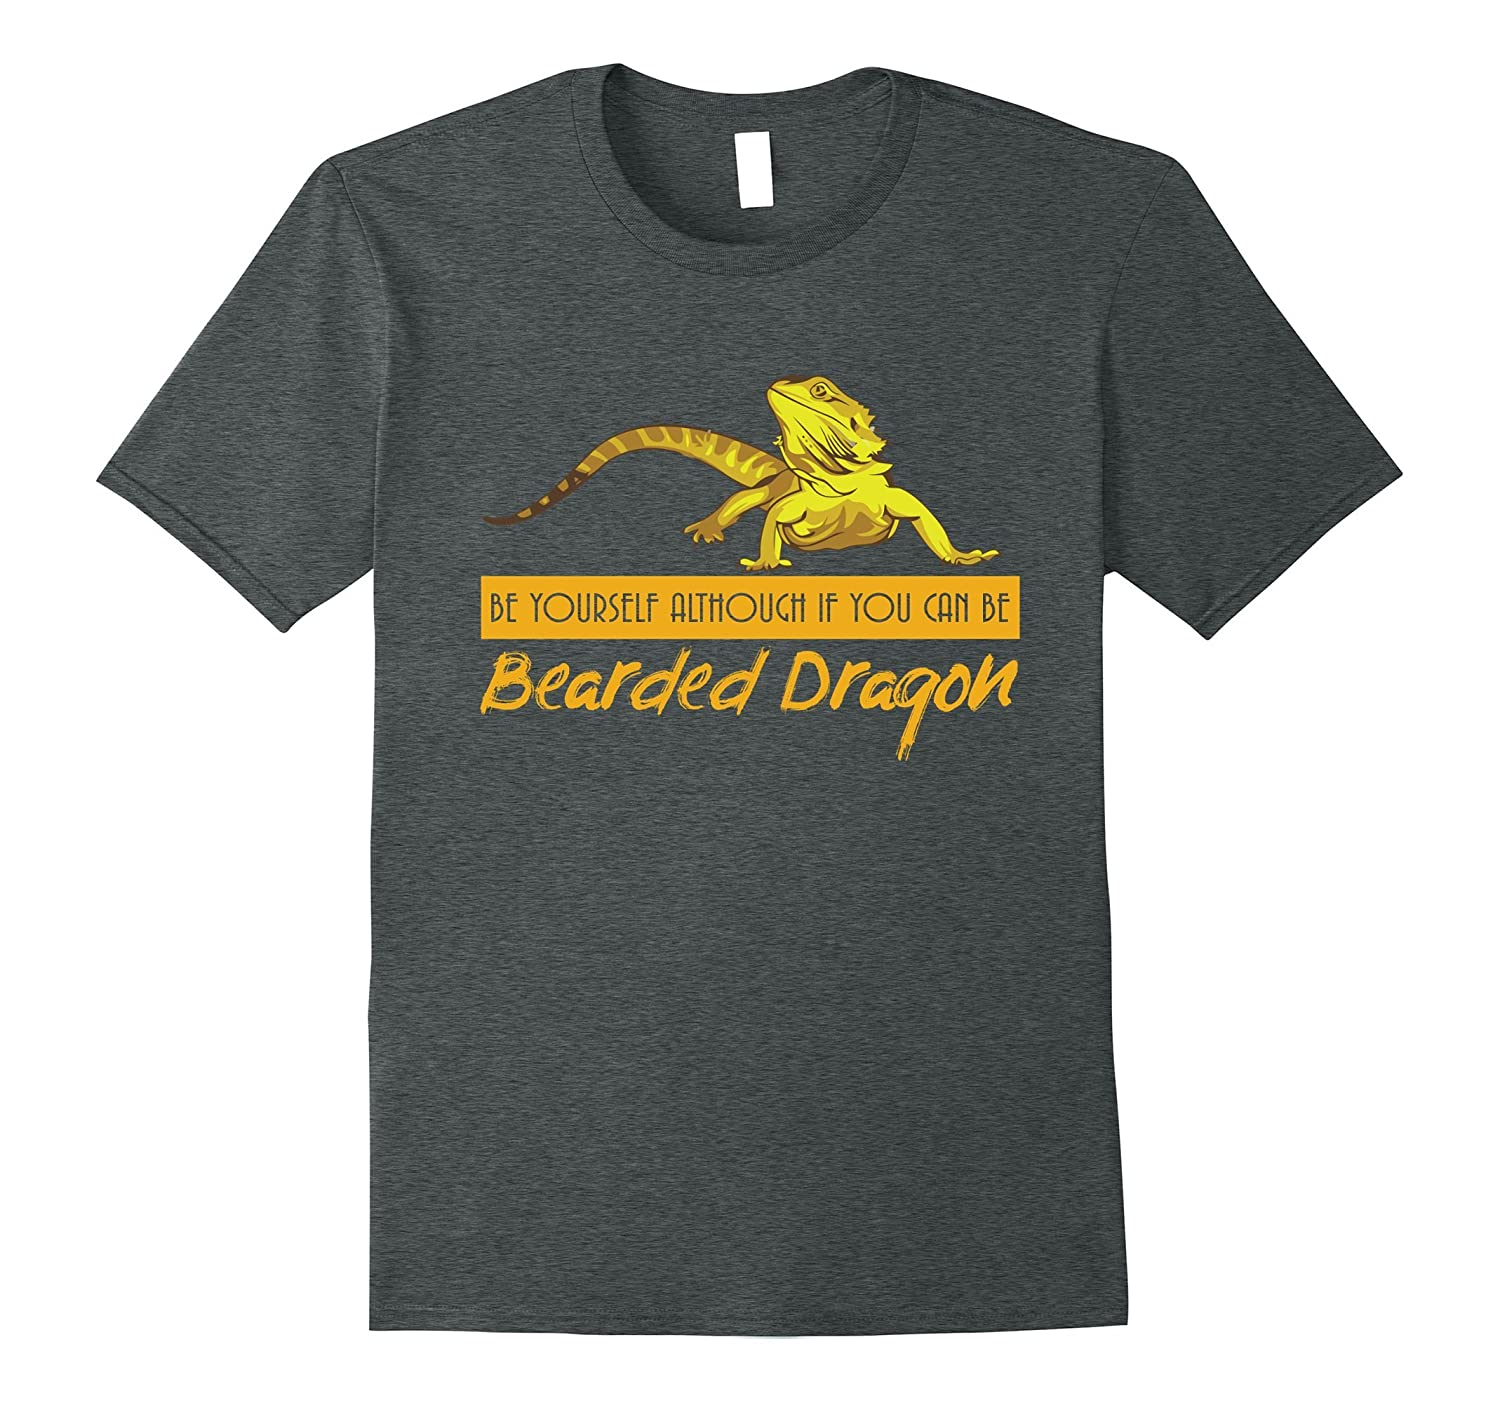 Funny – Be yourself although if you can be Bearded Dragon